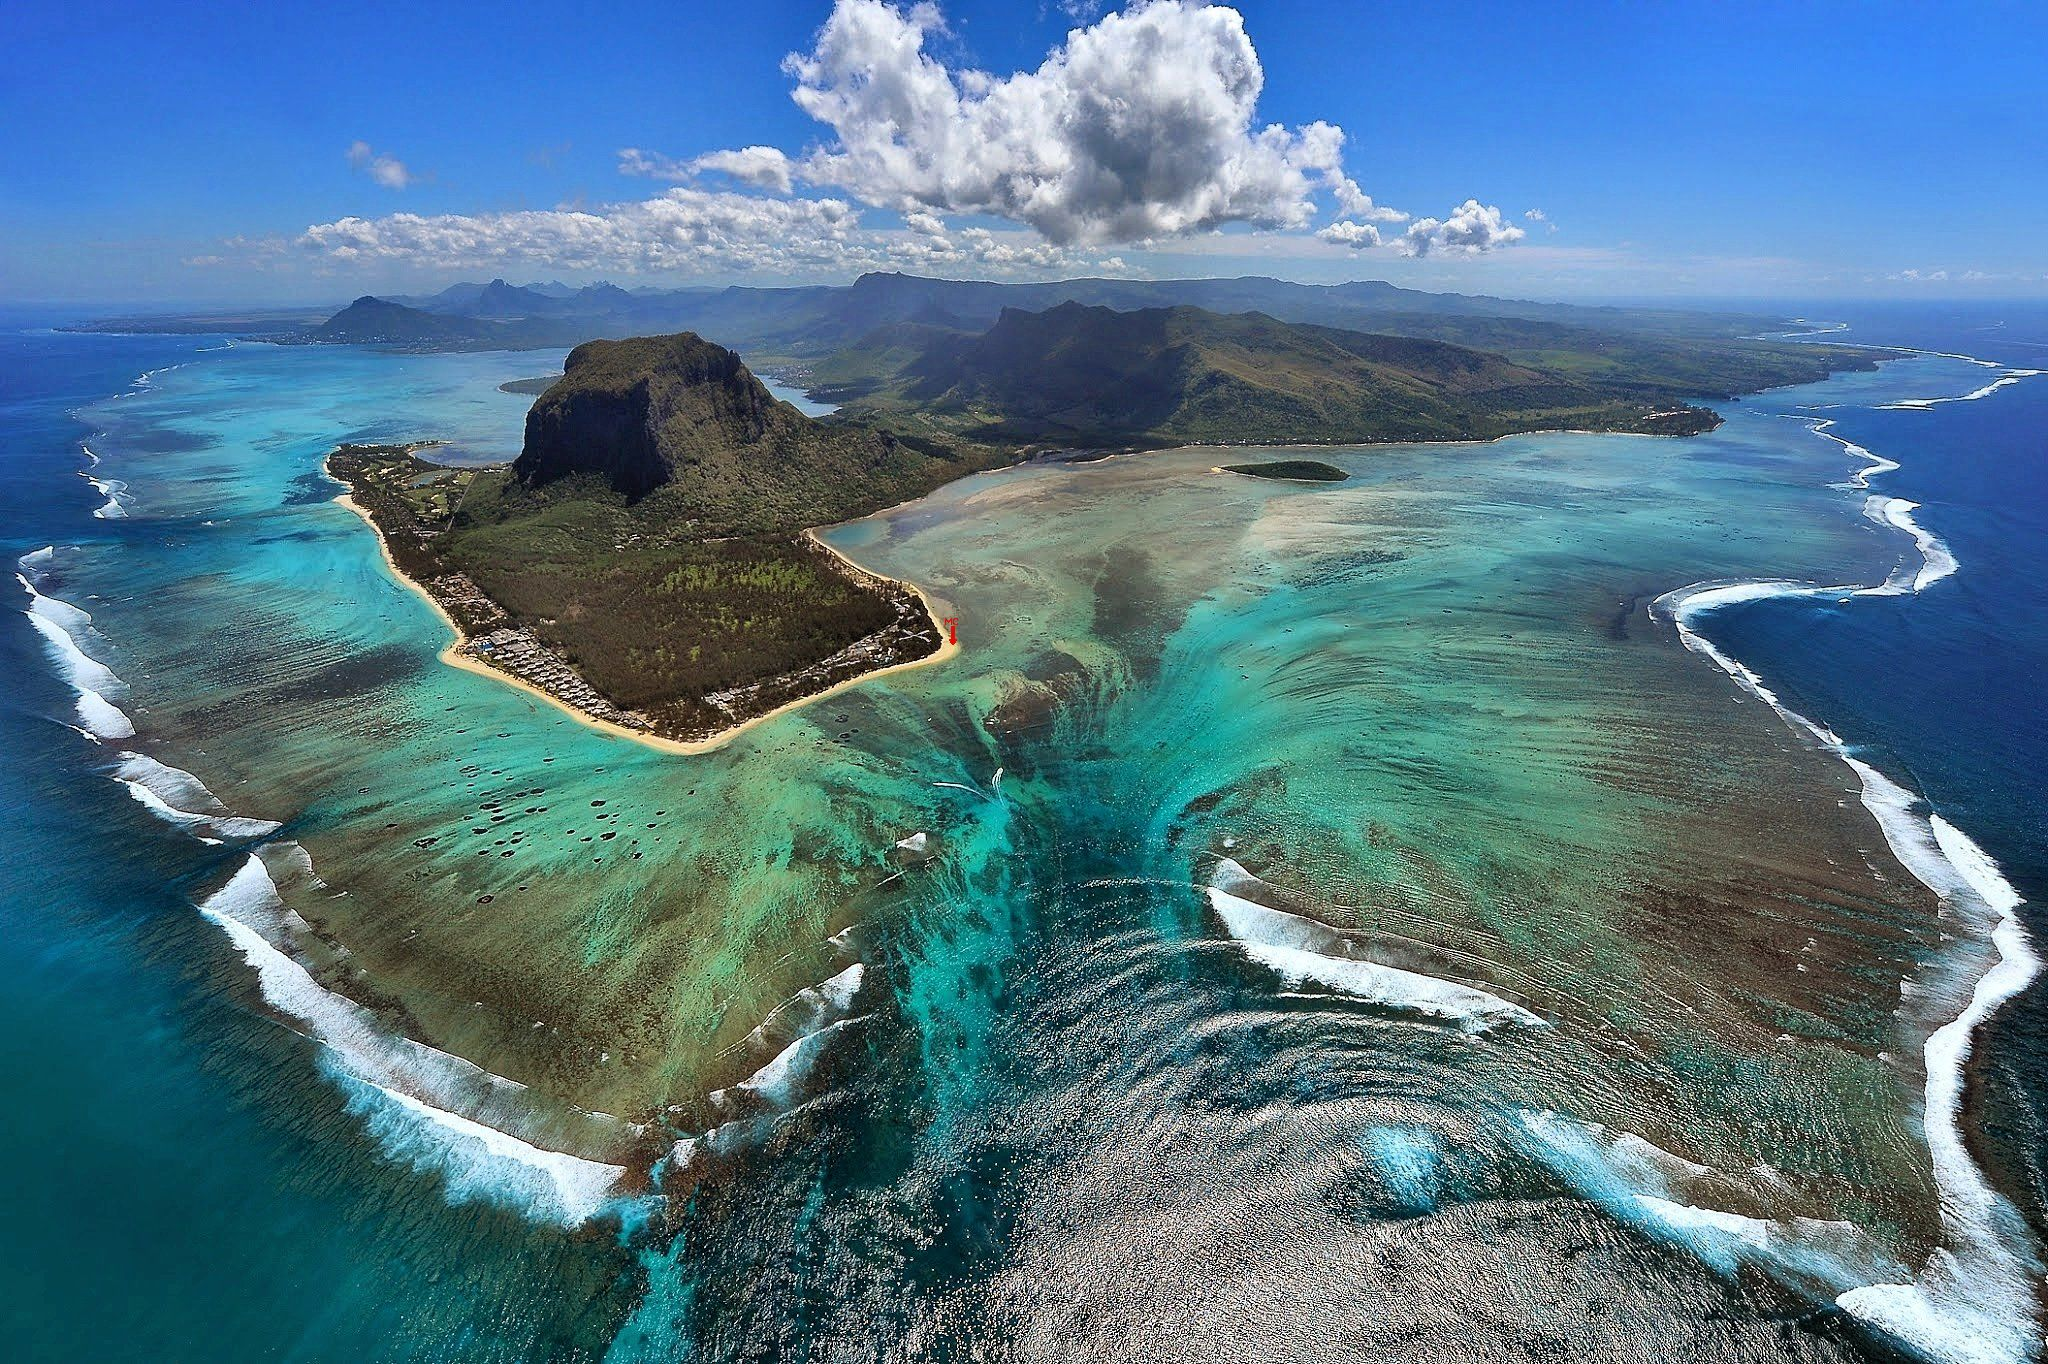 aerial-photo-le-morne-mauritius.jpg